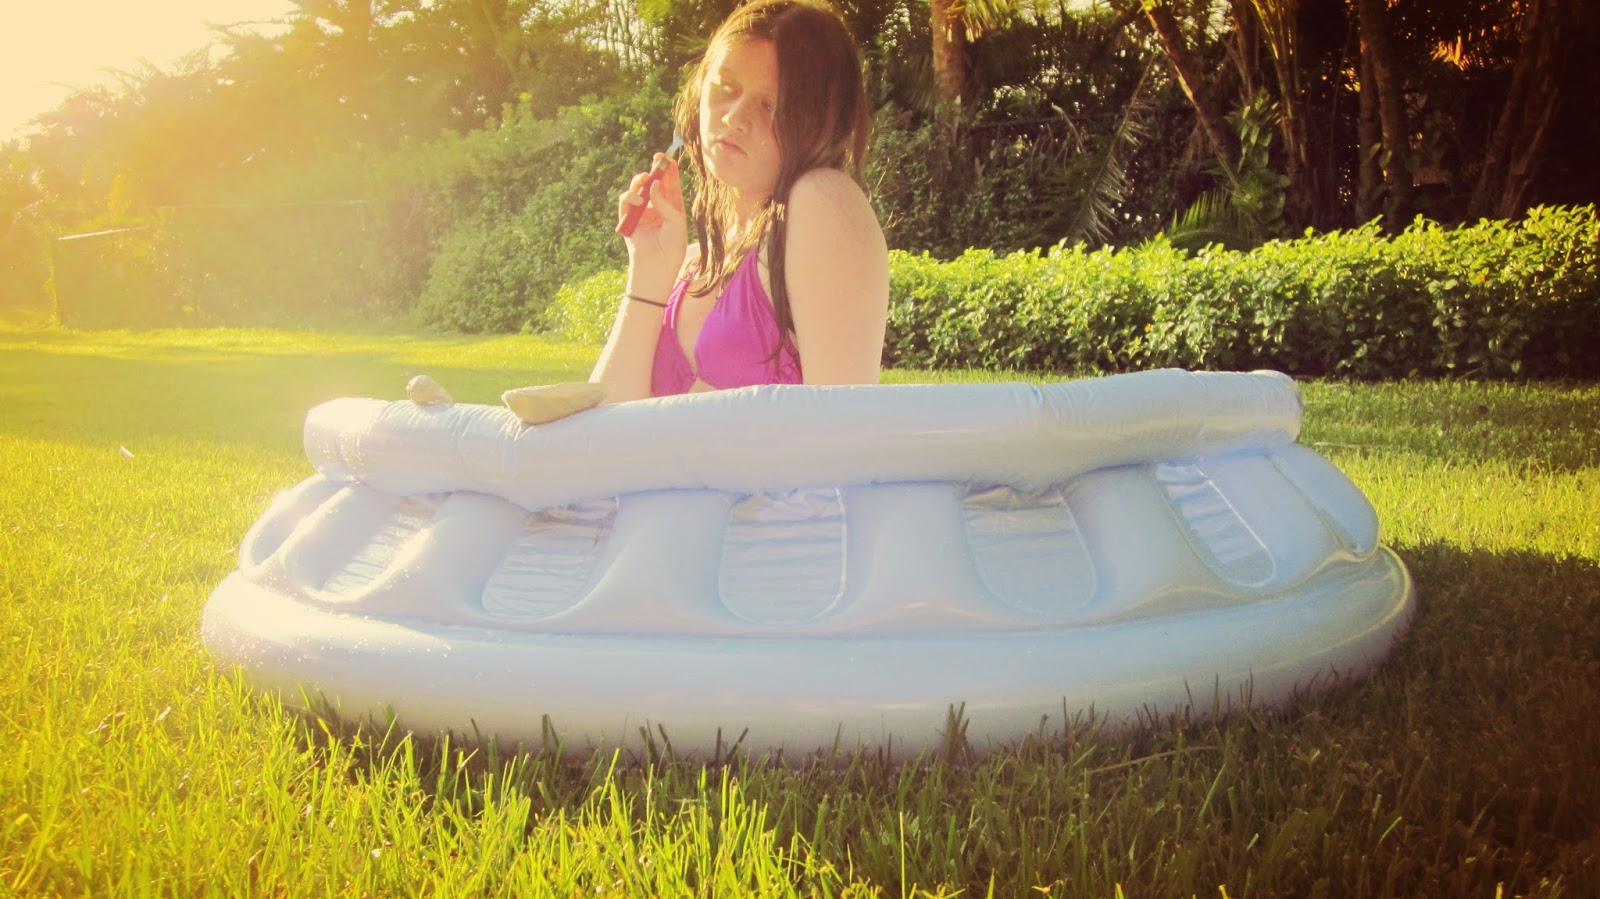 A young girl in a blue inflatable kiddie pool in the hot Florida sun in the summertime